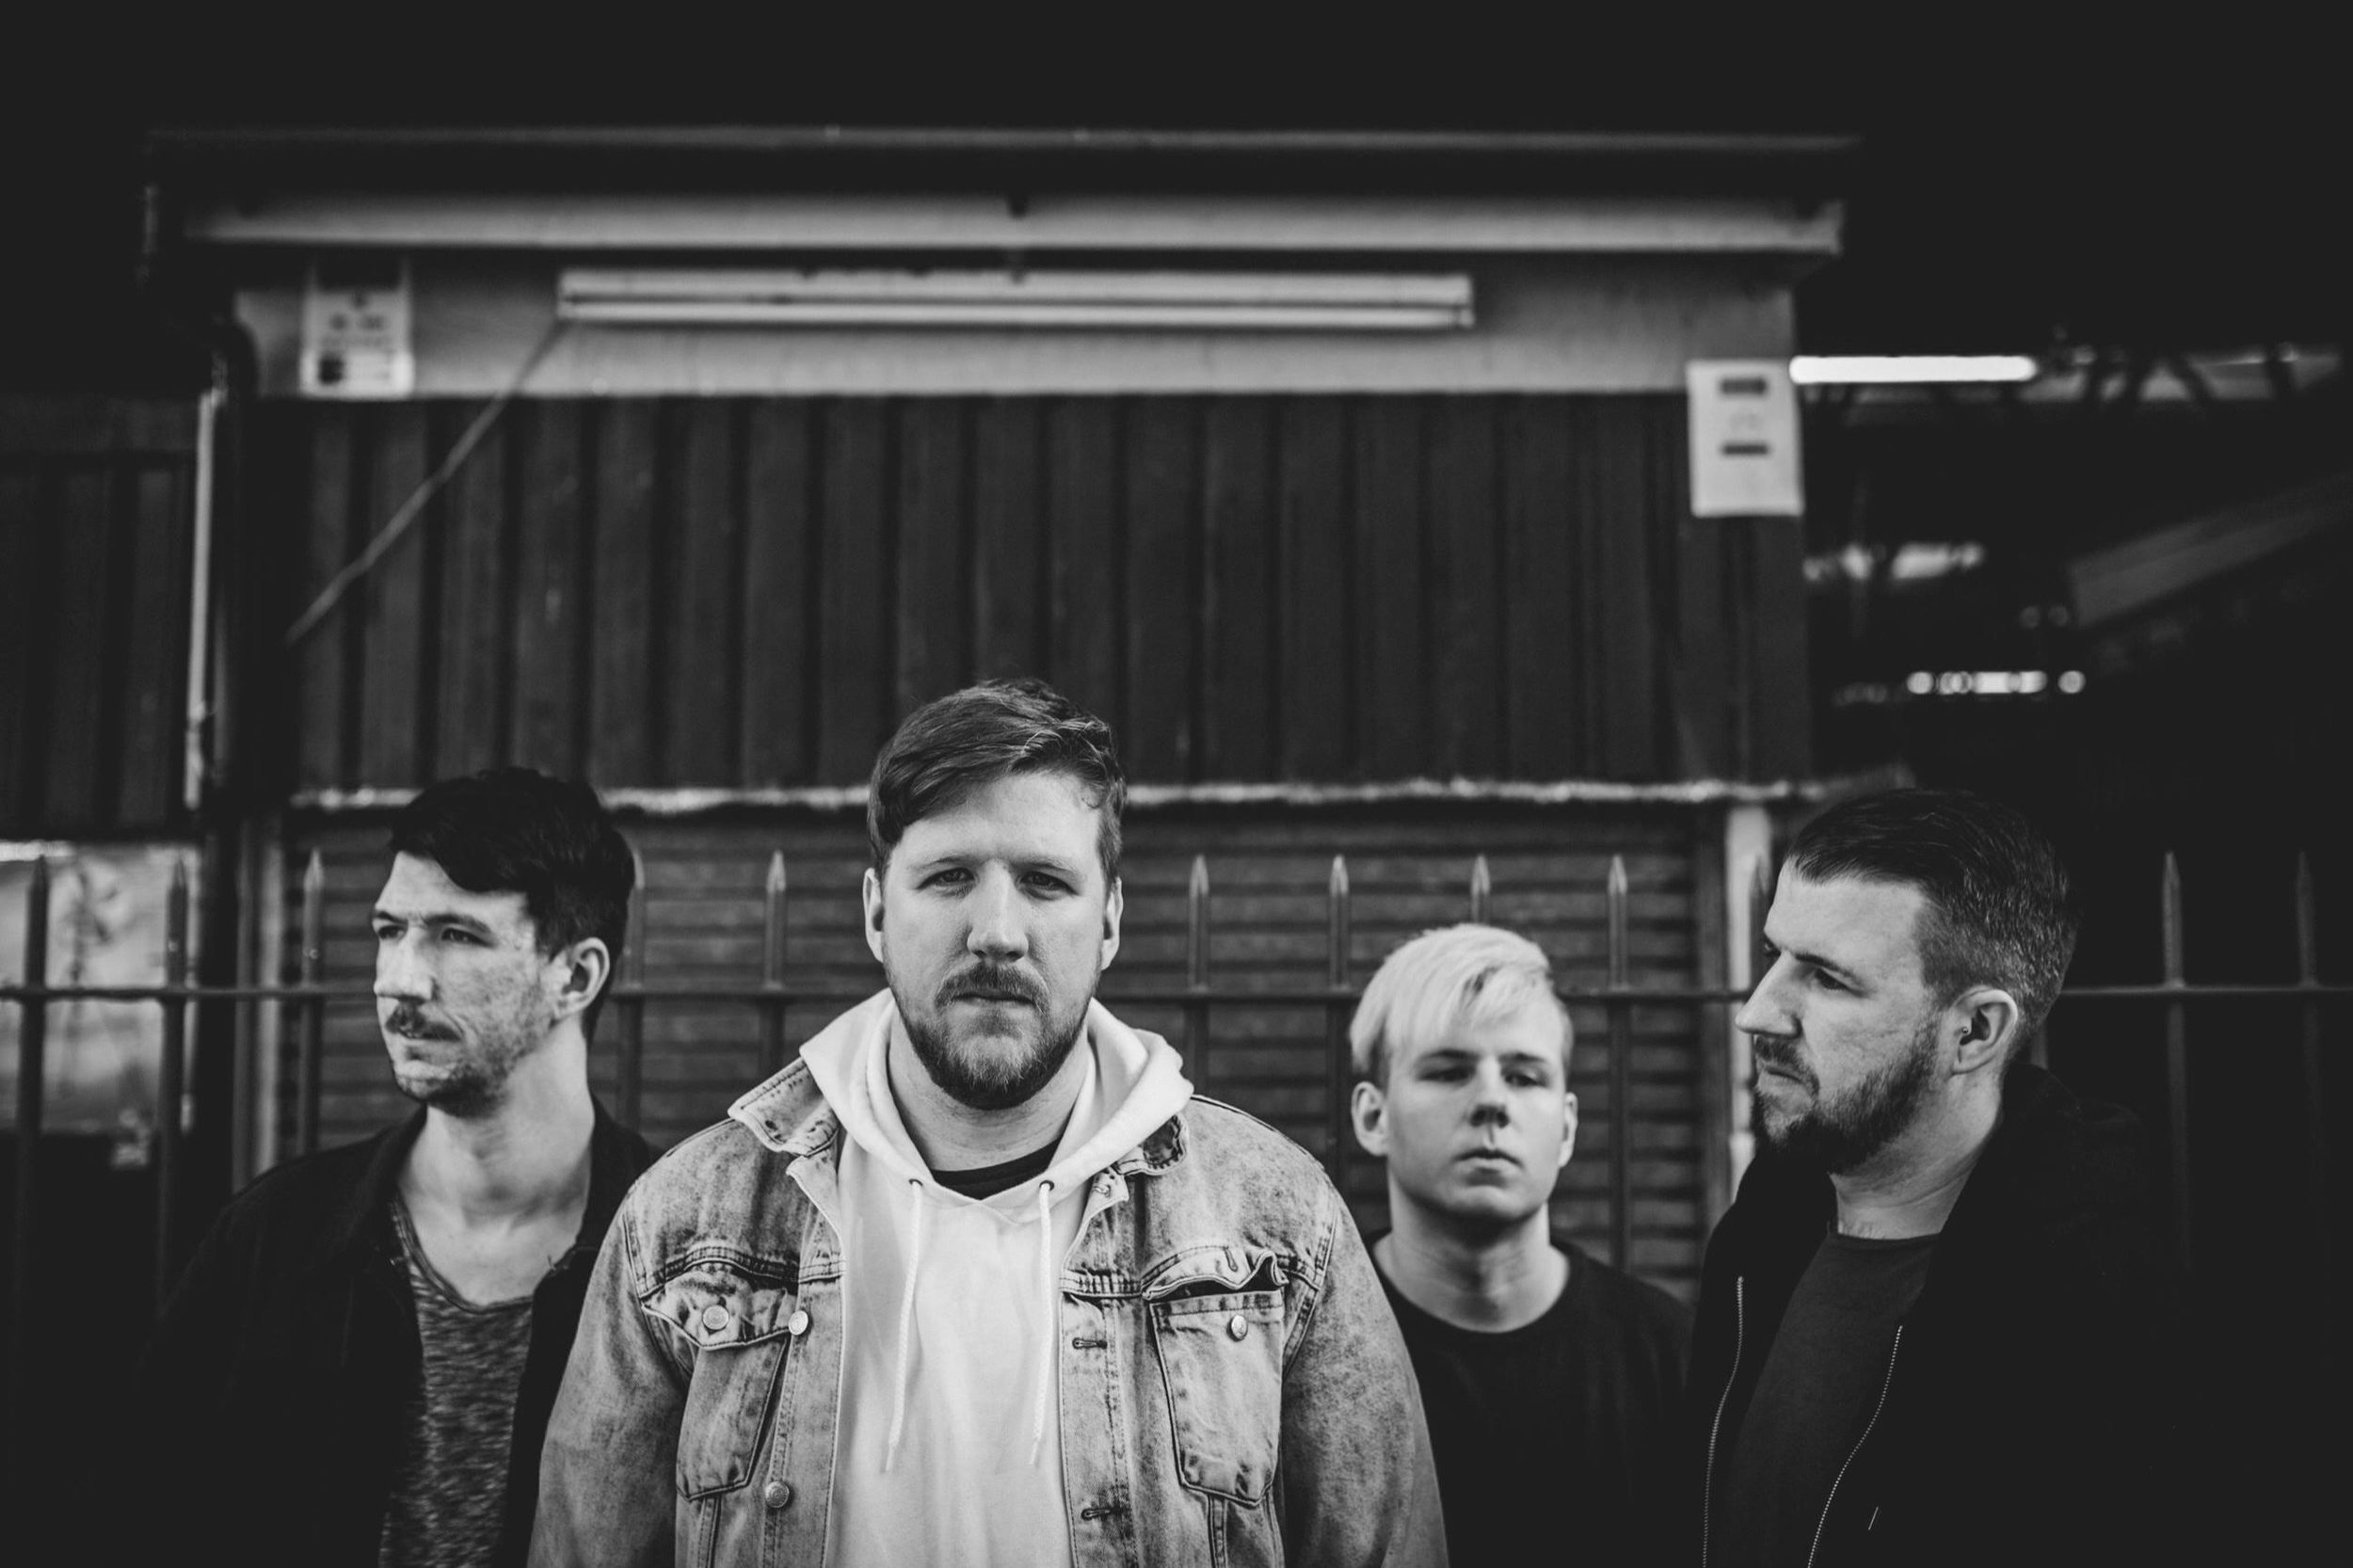 Endeavour - Endeavour are a band of brothers who play a unique style of rock music. Mixing huge, poppy, singalong choruses with heavy hitting guitars and drums to create a unique musical blend that will leave you unsure whether to sing along or headbang. Both are recommended!